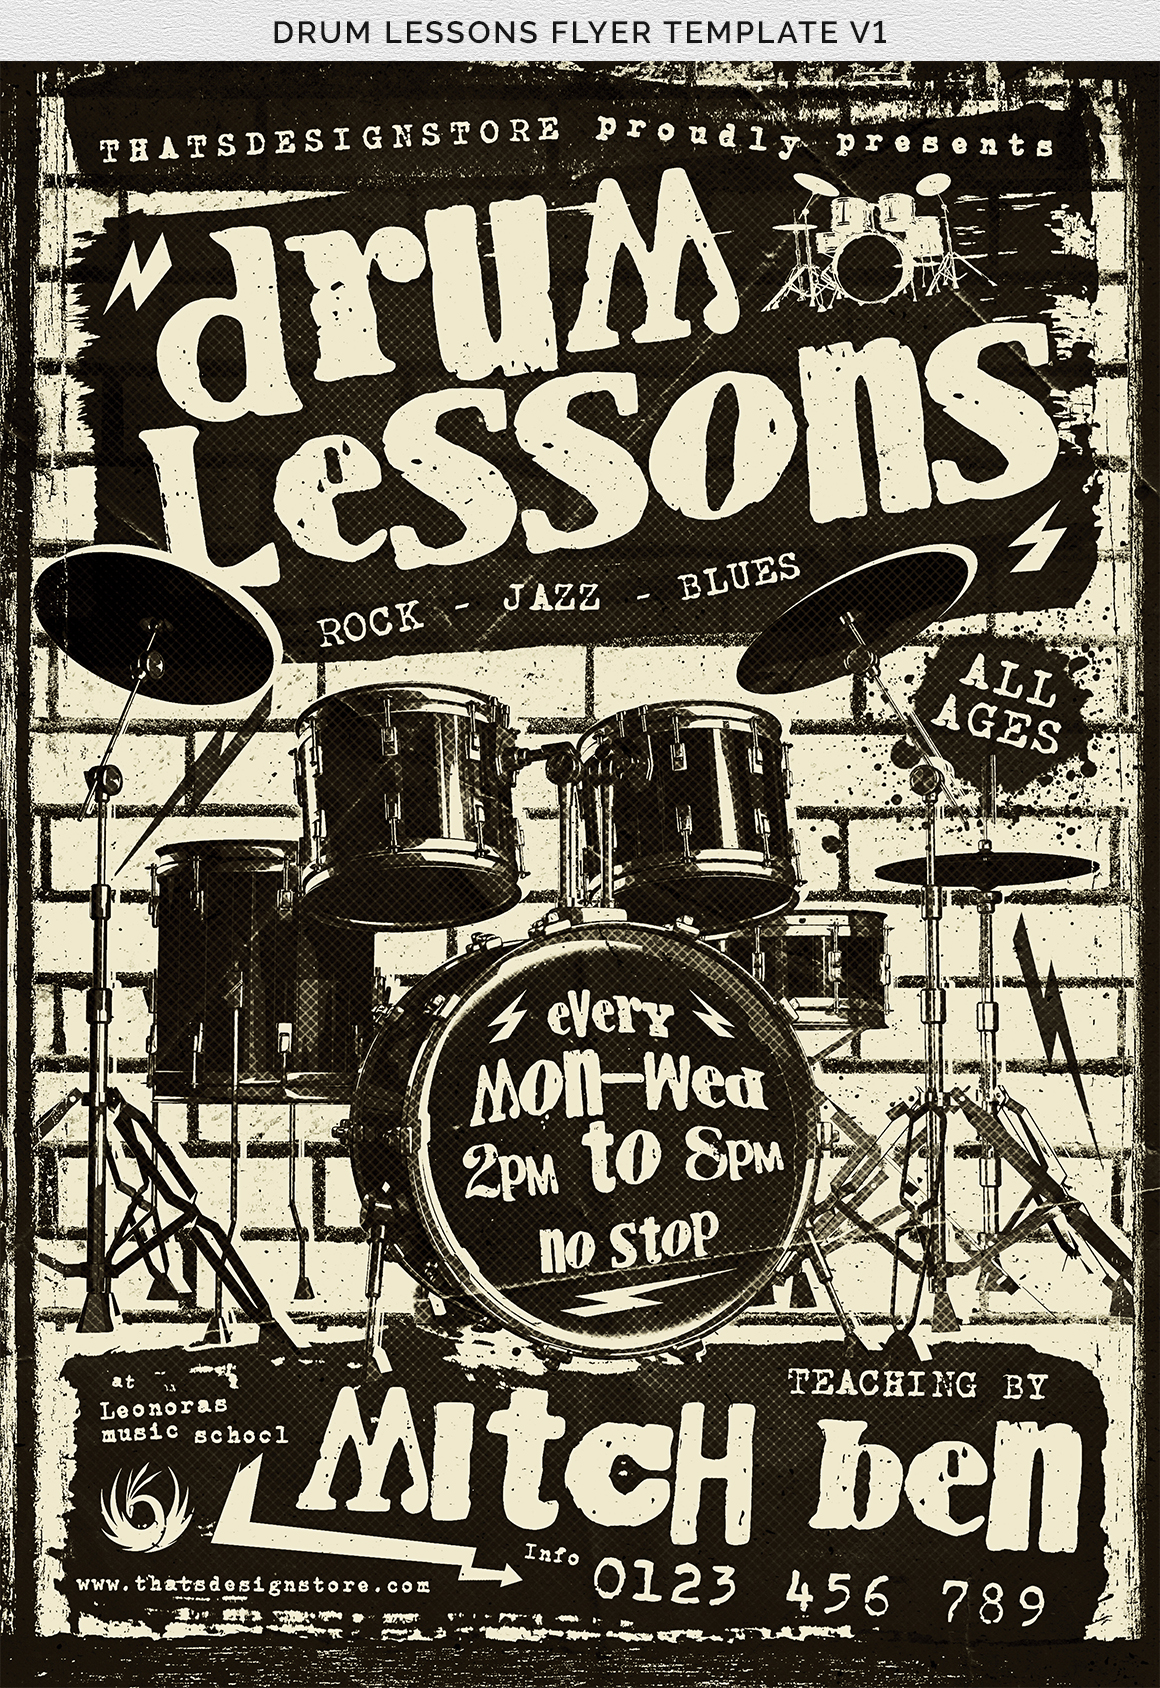 Drum Lessons Flyer Template V1 example image 12